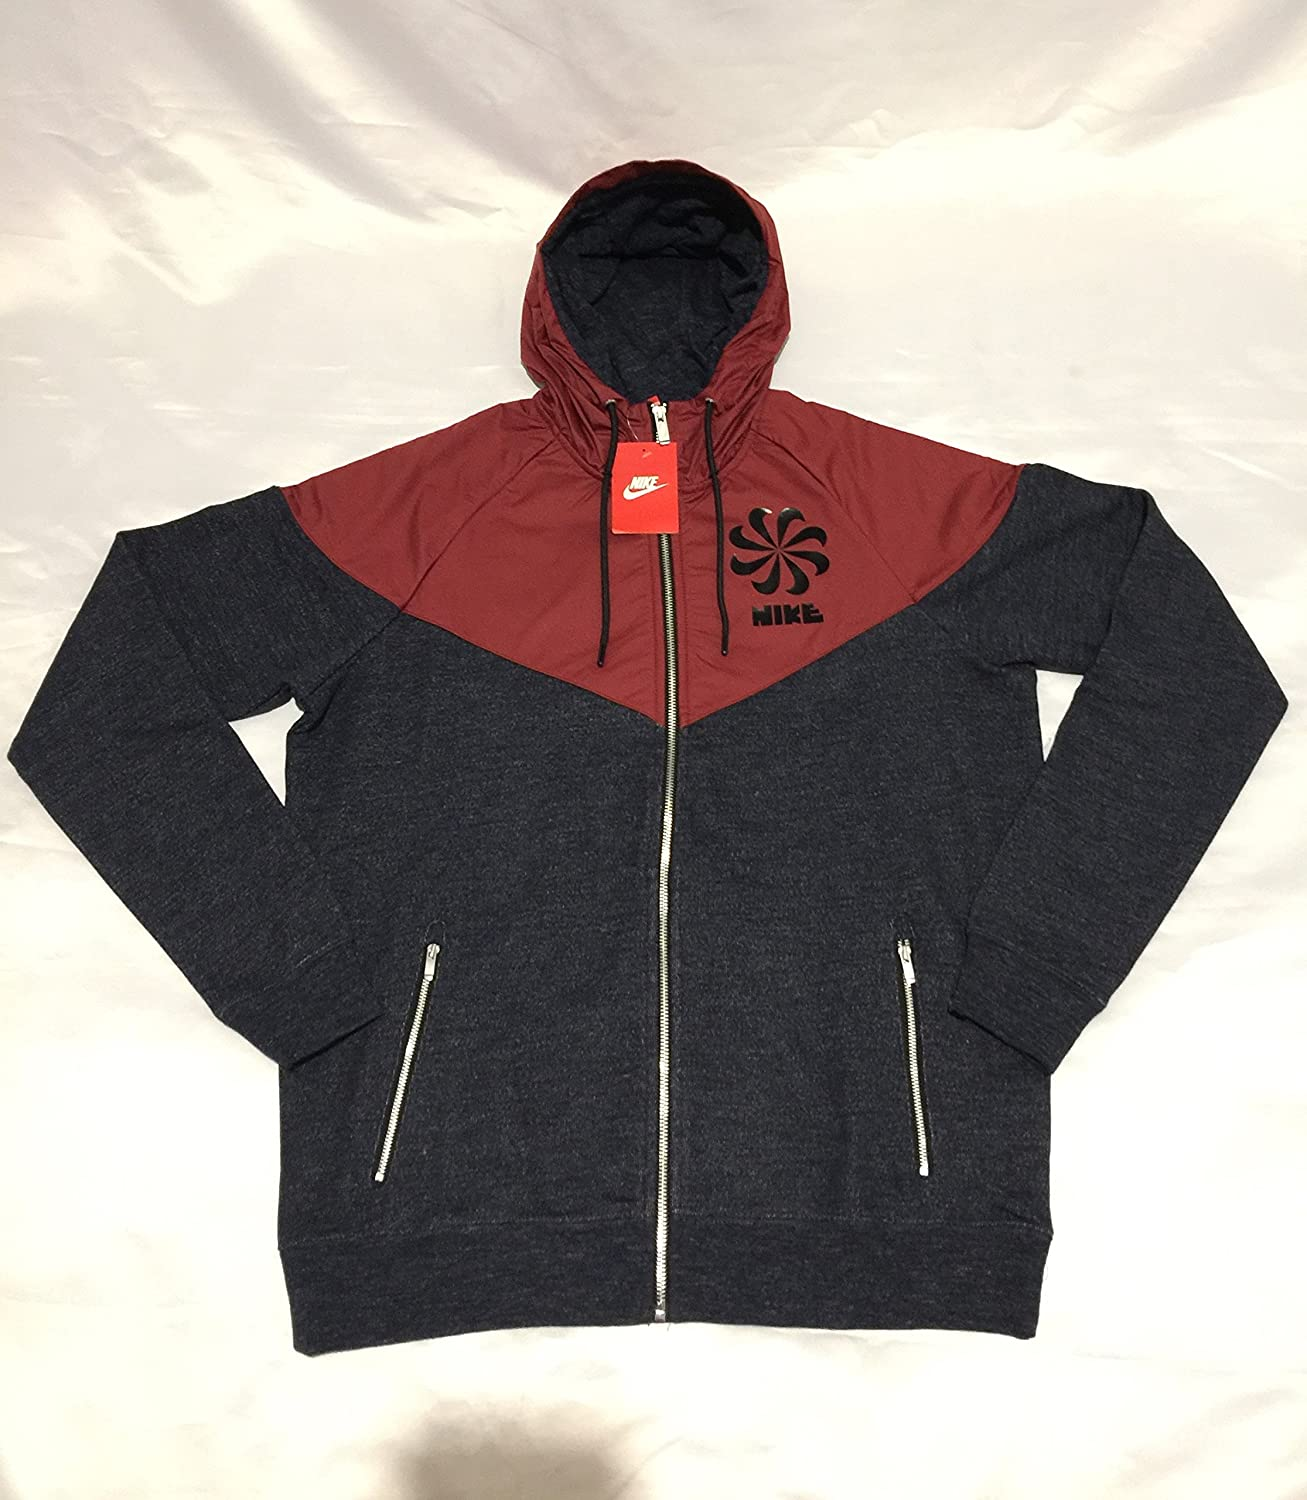 768736e64ccd Nike Legacy Windrunner Men s Hooded Jacket RED Blue Hoodie TOP 869202-473  (X-Large)  Amazon.co.uk  Clothing